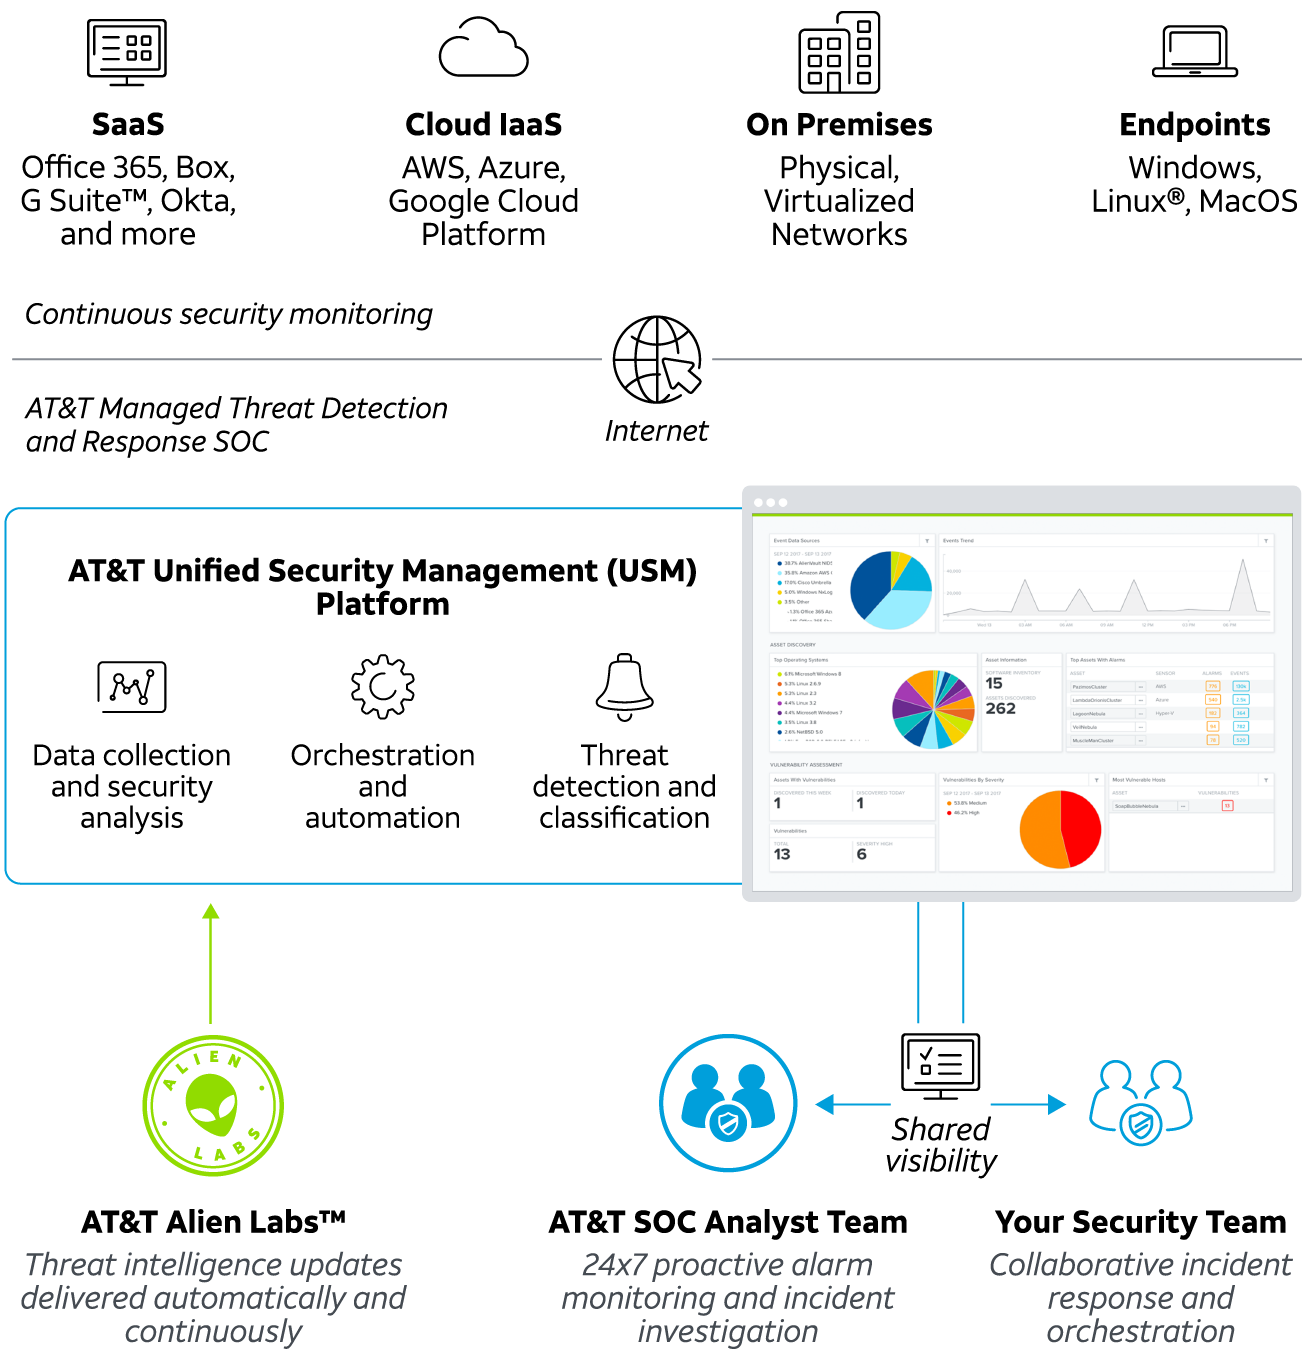 AT&T Managed Threat Detection and Response diagram